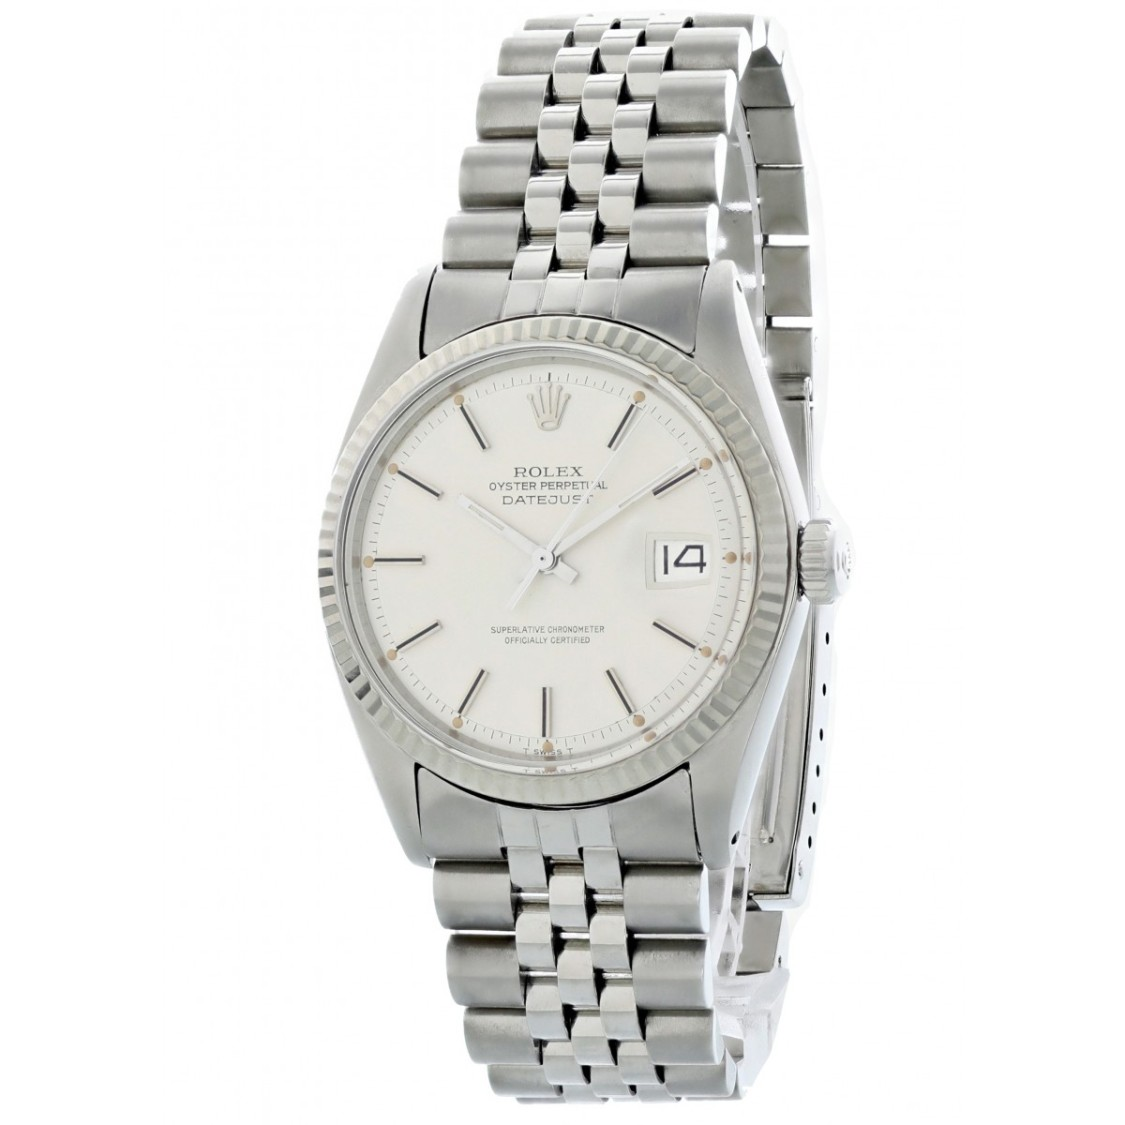 Rolex Lingerie OYSTER PERPETUAL DATEJUST 1601 MENS WATCH